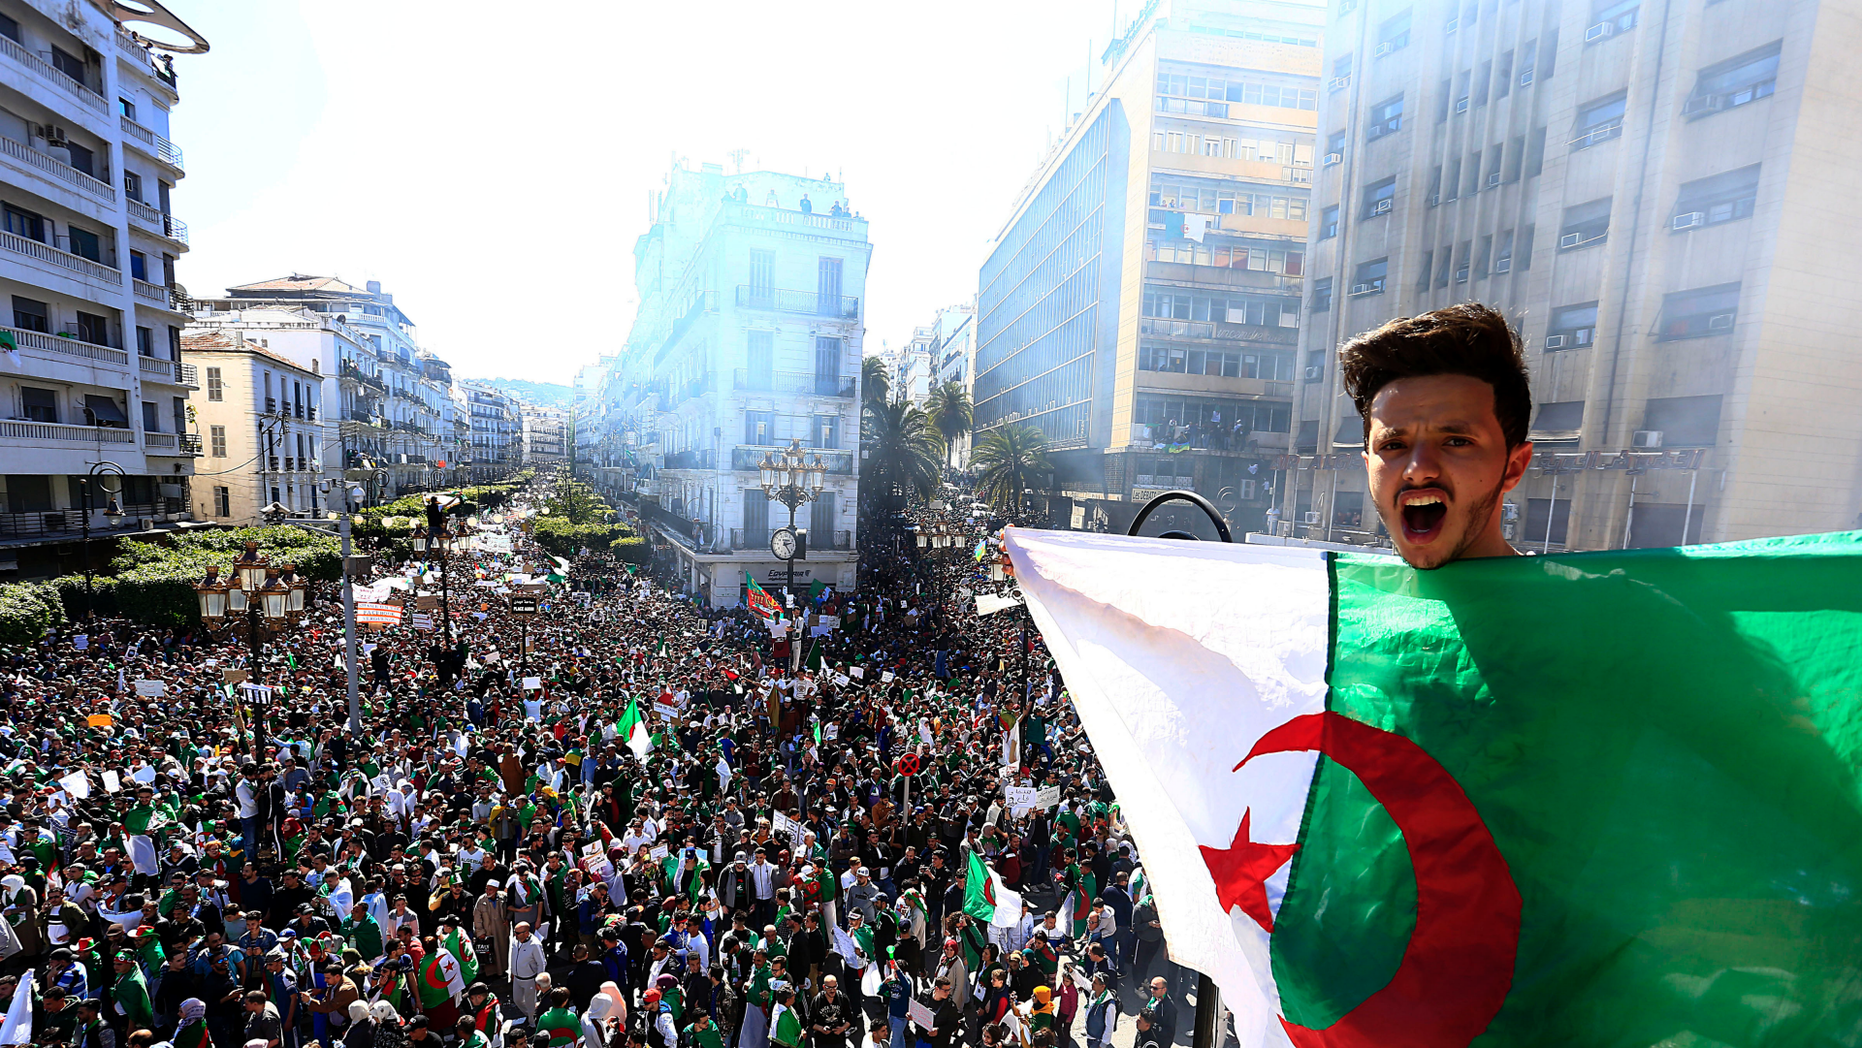 Algerian shouts as he holds the national flag during a protest in Algiers, Algeria, Friday, March 15, 2019. Tens of thousands of people gathered Friday in Algeria's capital and other cities amid heavy security for what could be decisive protests against longtime leader Abdelaziz Bouteflika. (AP Photo/Toufik Doudou)